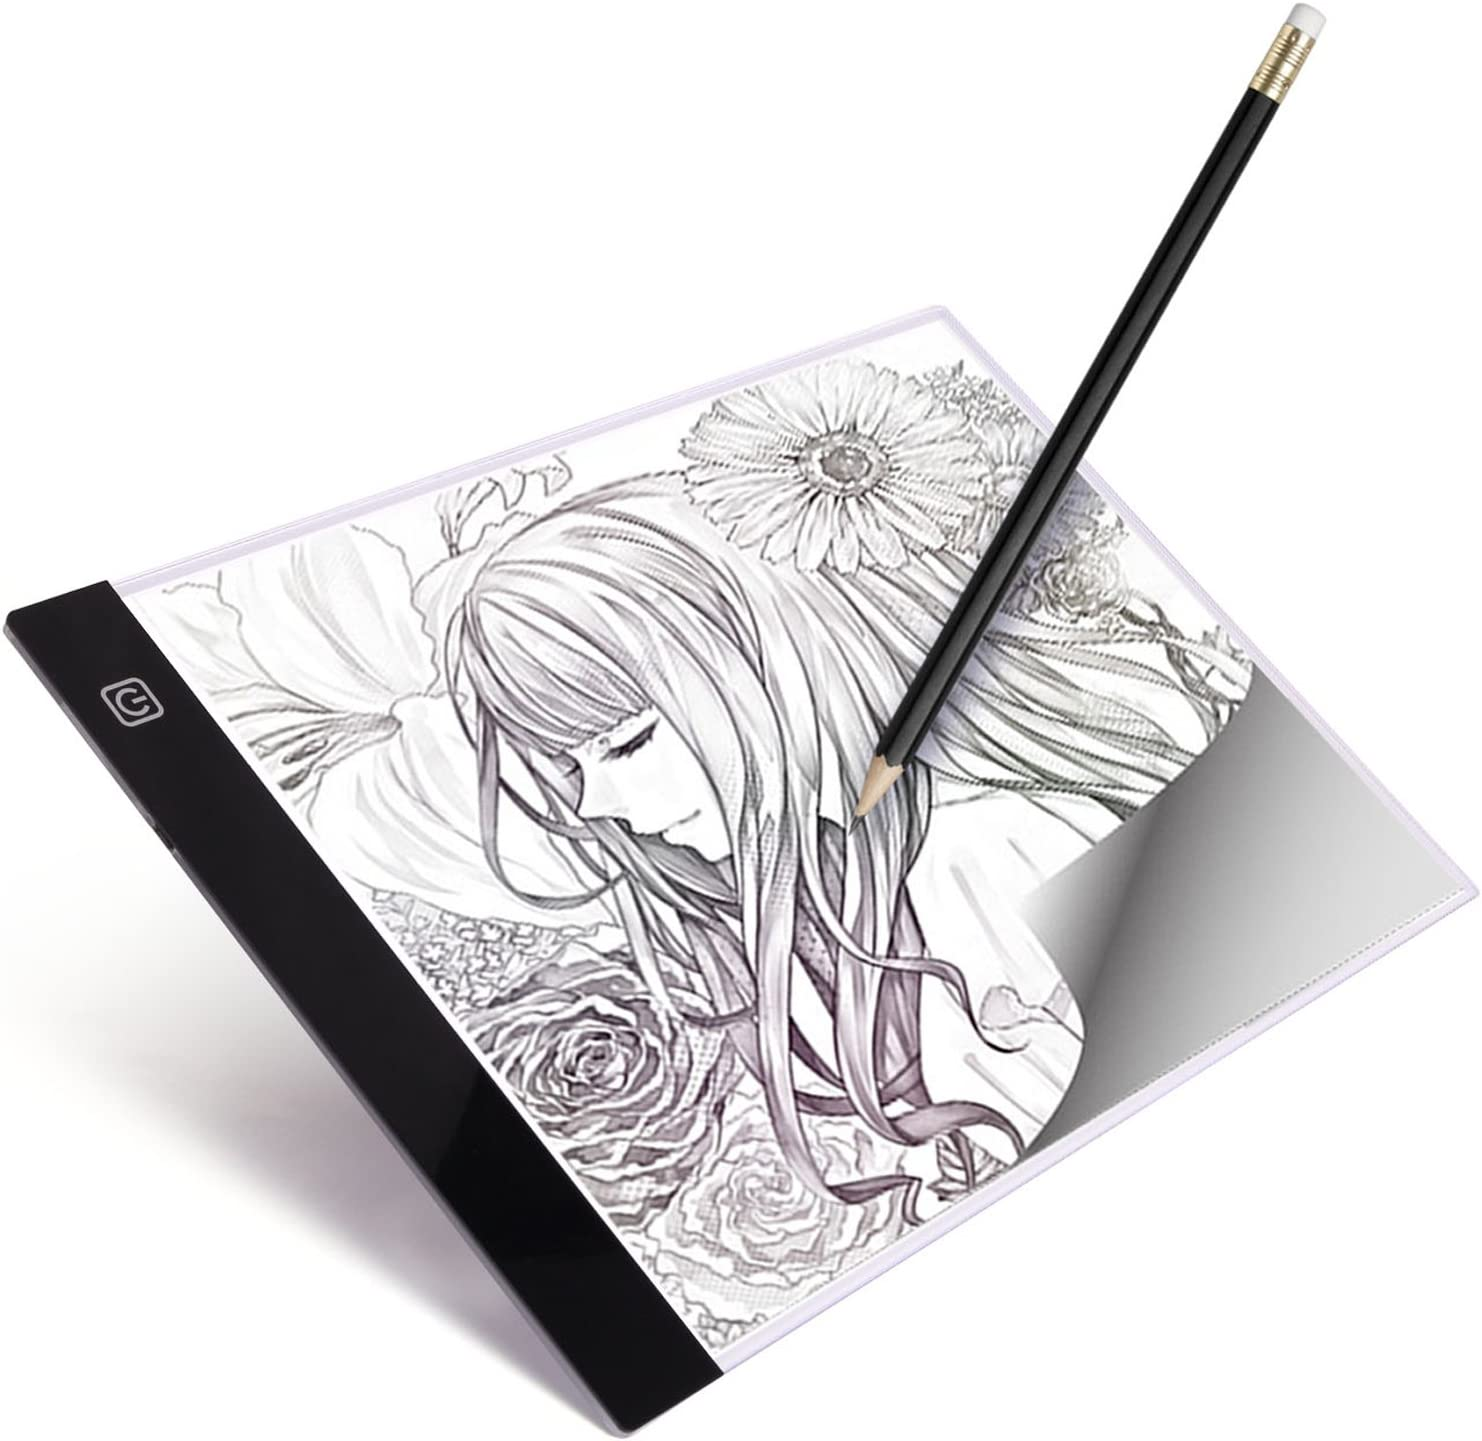 X-ray Viewing Animation AGPtek A4 Ultra-thin Portable LED Artcraft Tracing Light Pad USB-Cable Wall Adapter Powered Stepless brightness control For Artists Sketching Sewing Drawing